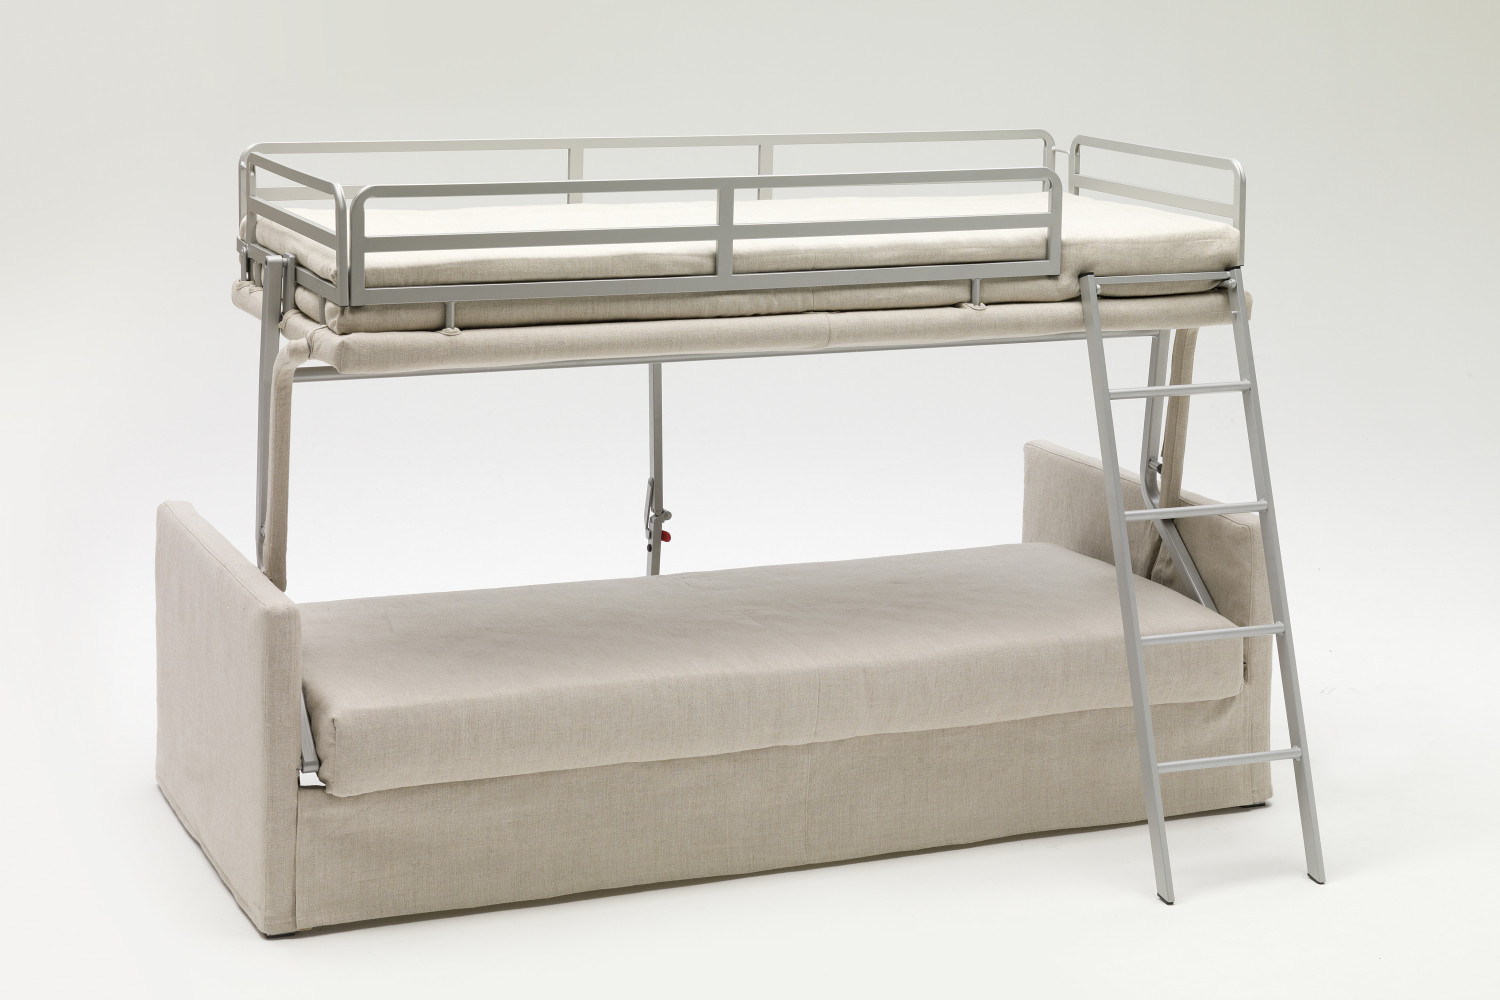 George sofa bunk bed for Divano letto due posti ikea